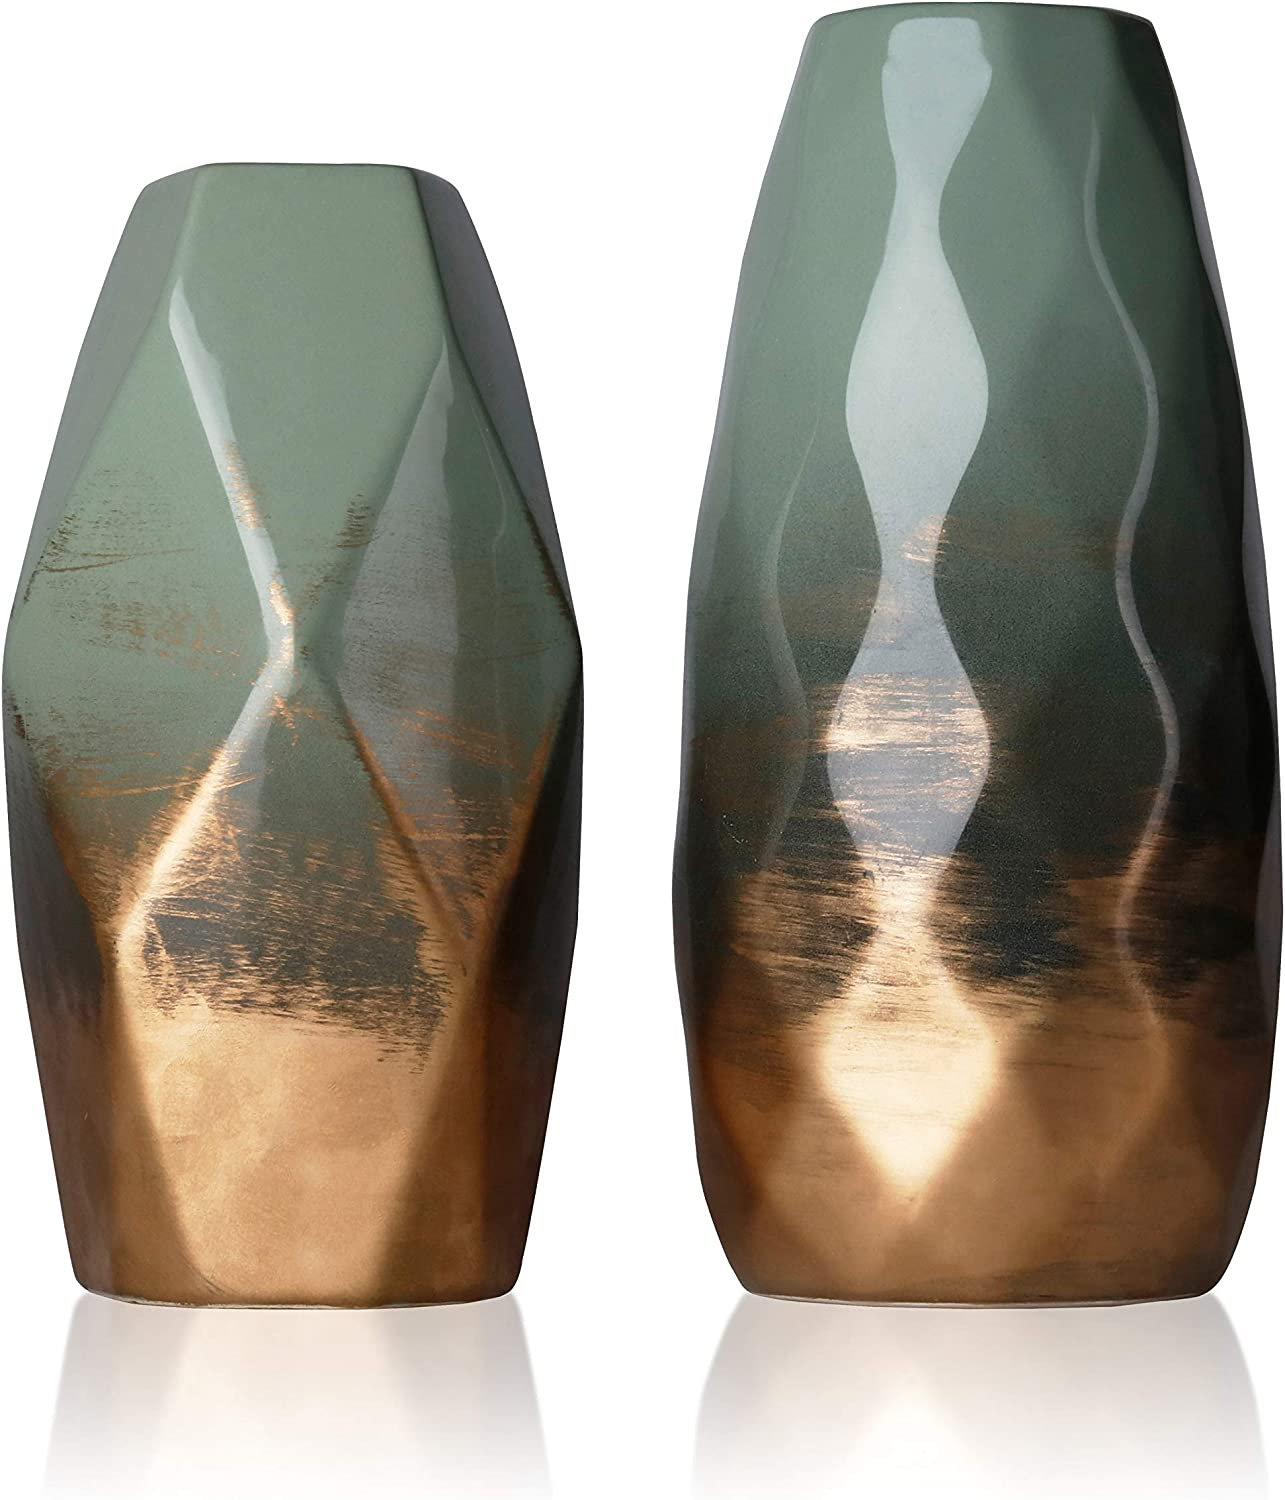 TERESA'S COLLECTIONS Set of 2 Ceramic Flower Vases, Green and Gold Handmade Modern Geometric Decorative Vases for Kitchen,Office,Wedding or Living Room